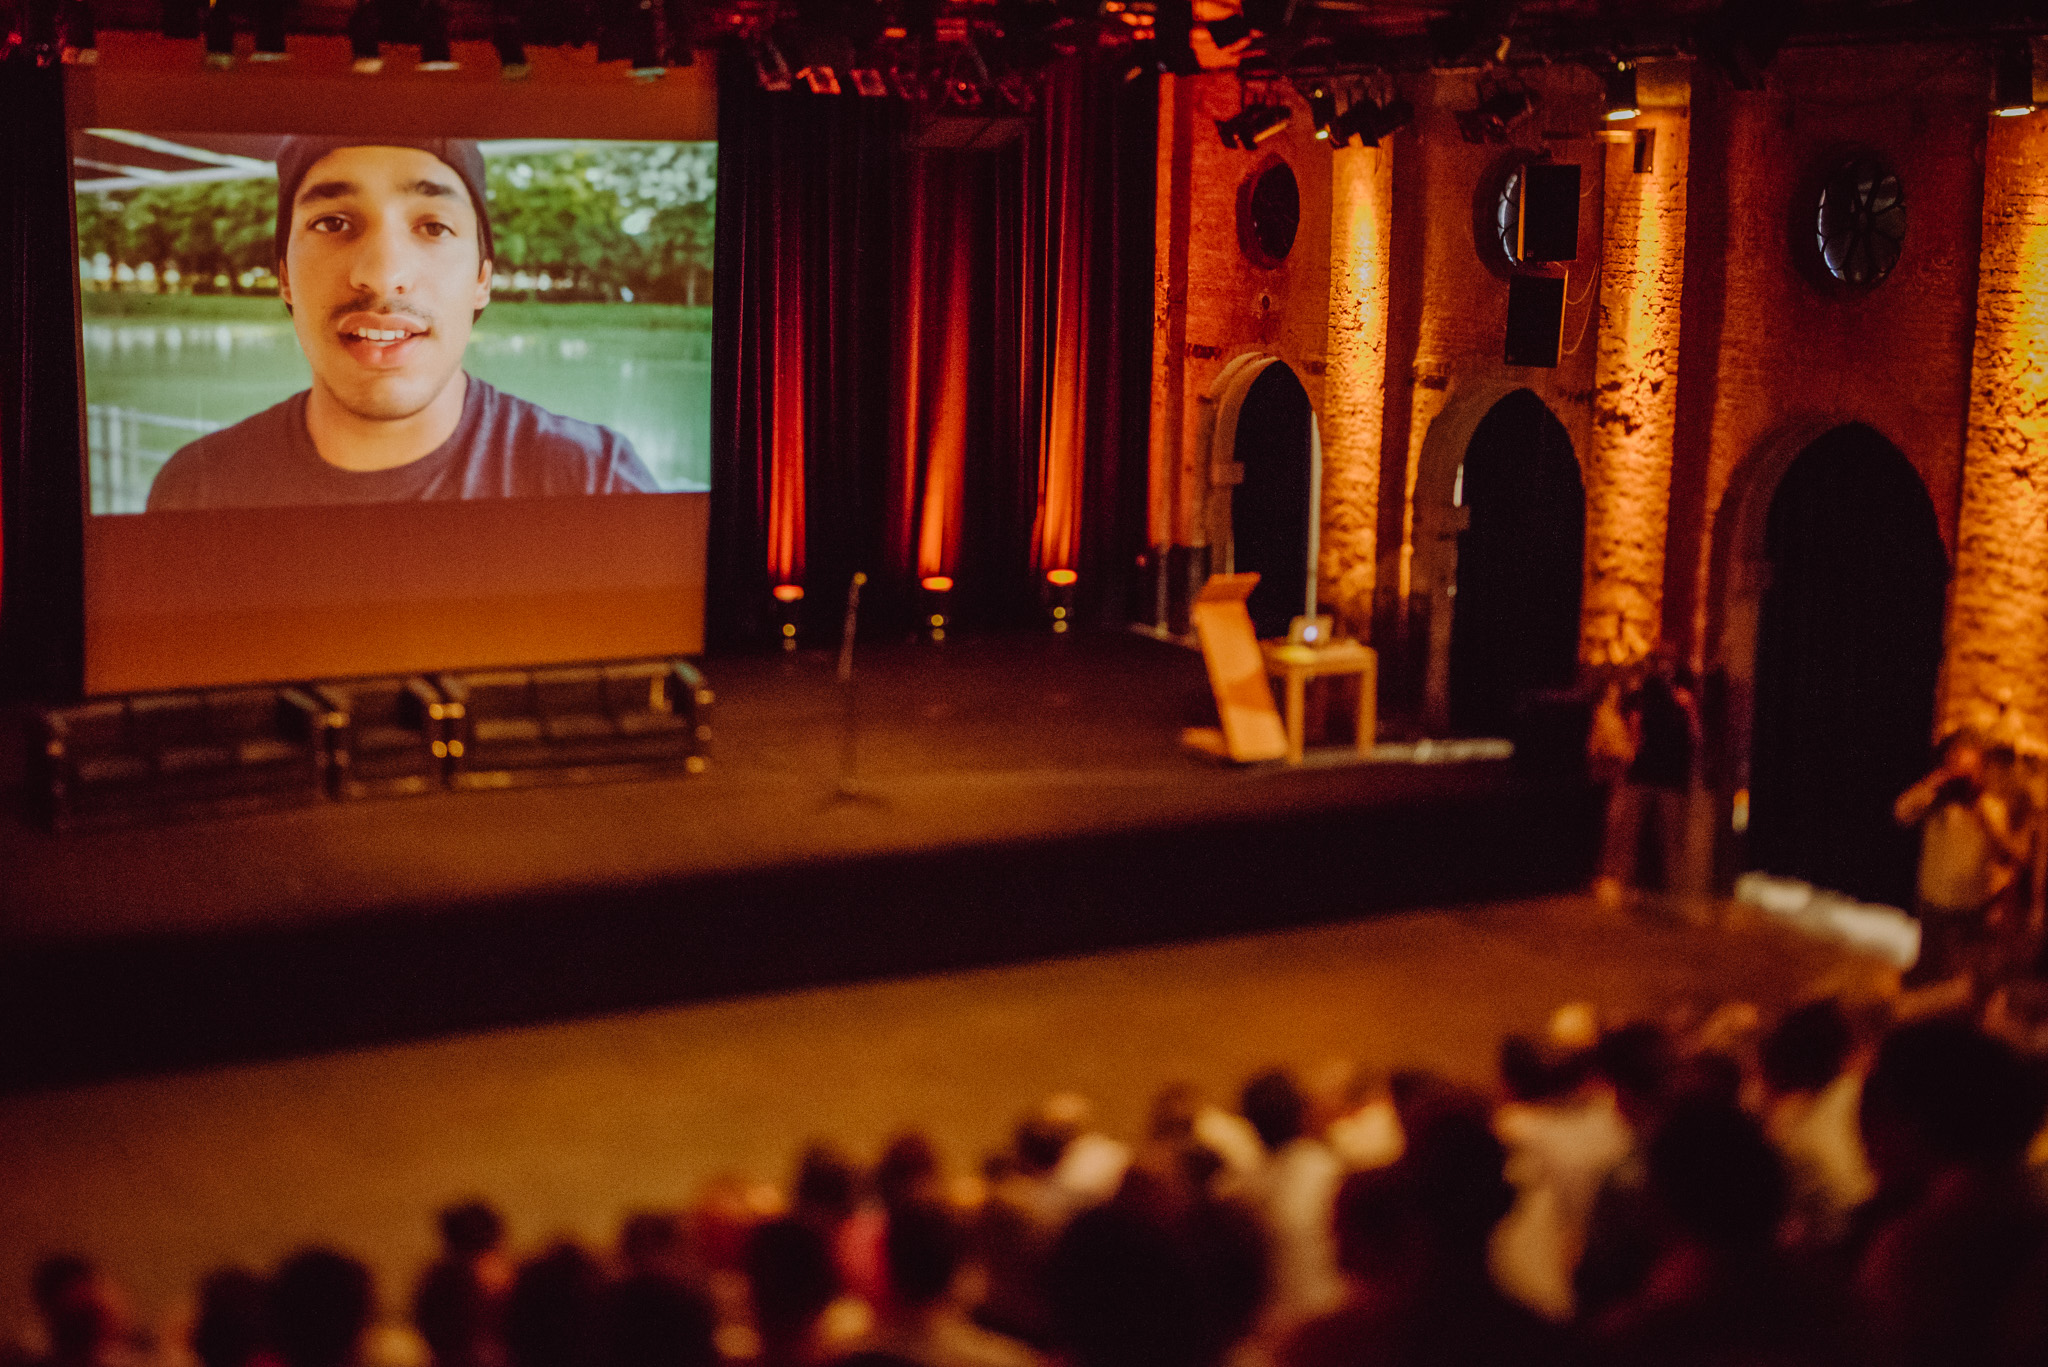 Angelo Medagoda van Friends and Fools maakte een video op het Graduation event